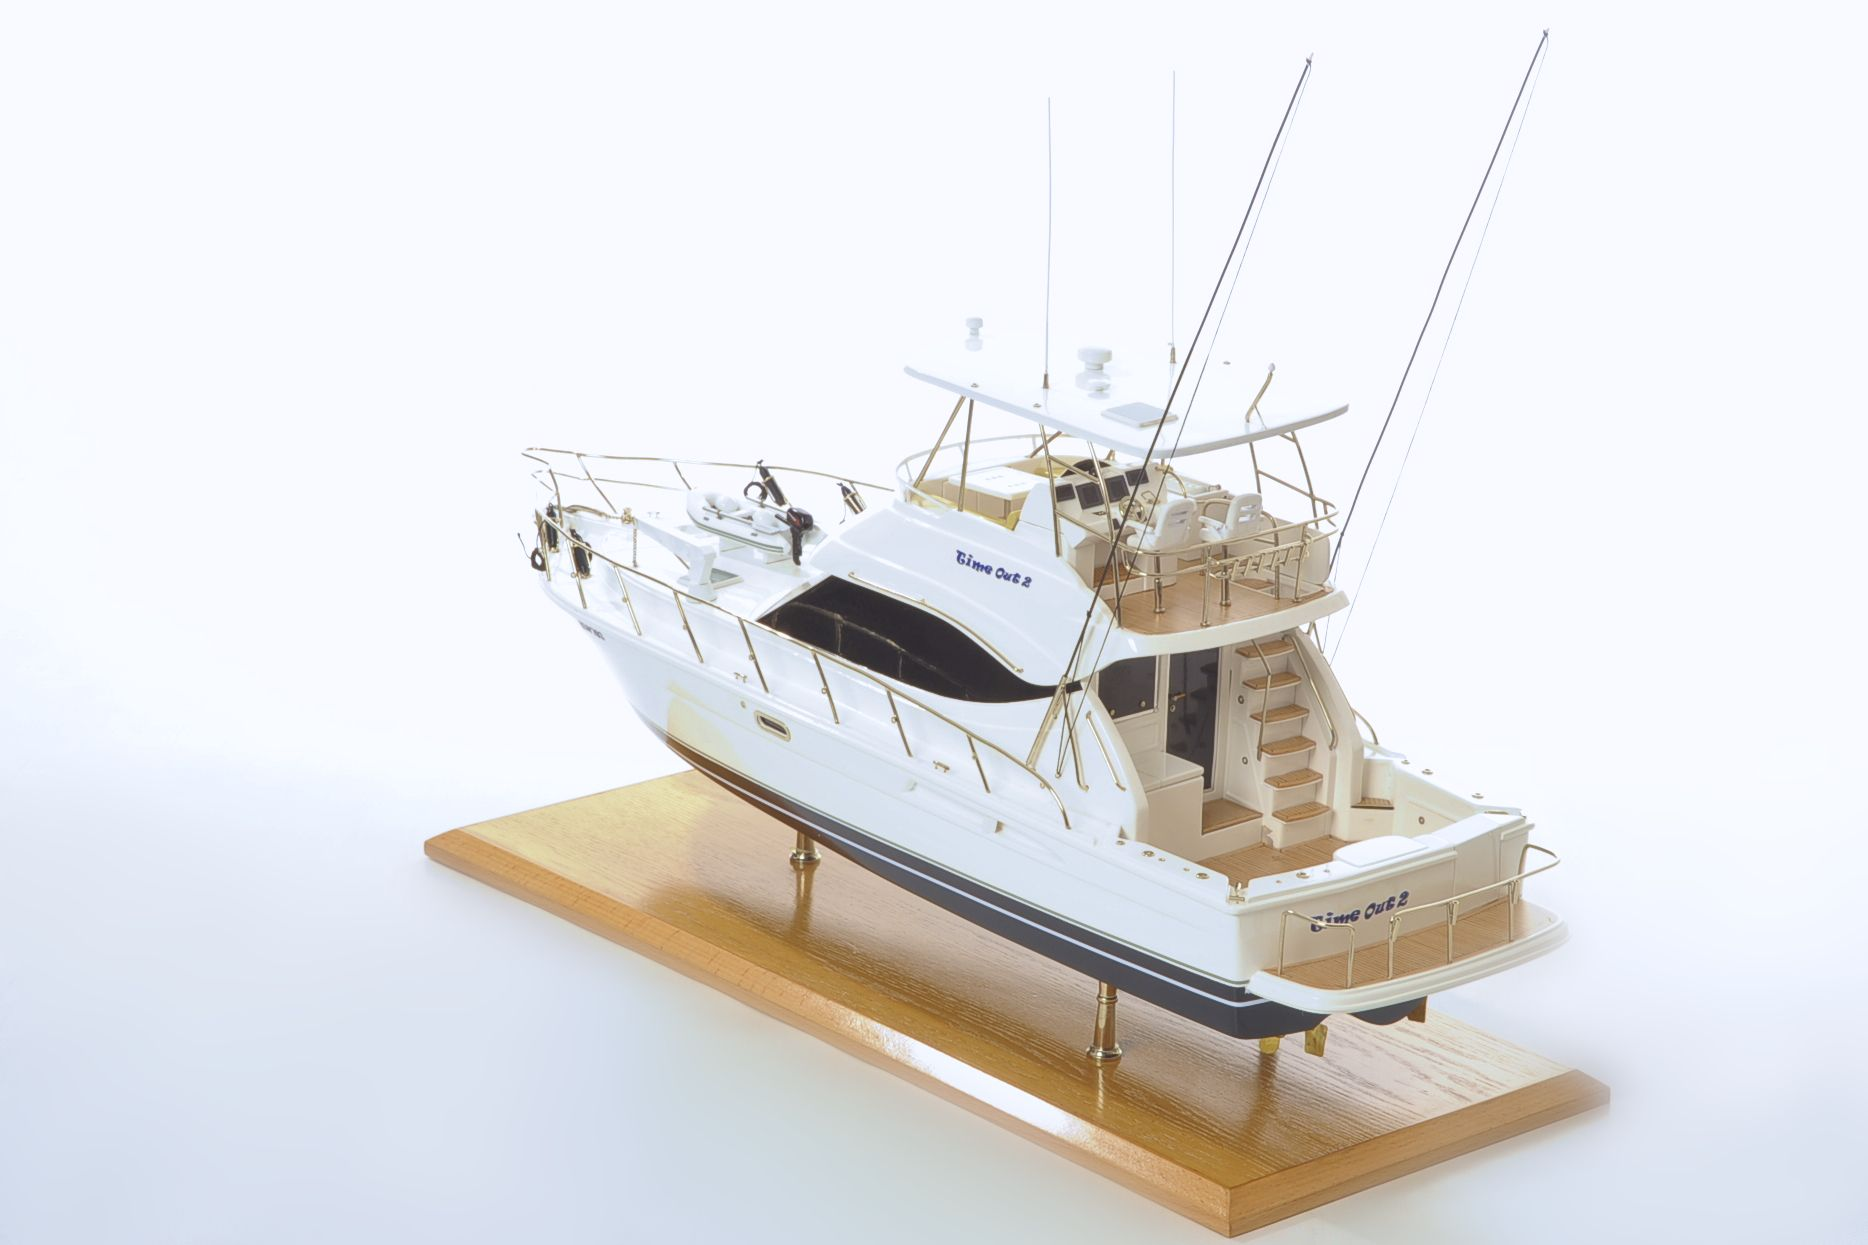 1517-8954-Rivera-45-Model-Boat-Time-Out-2